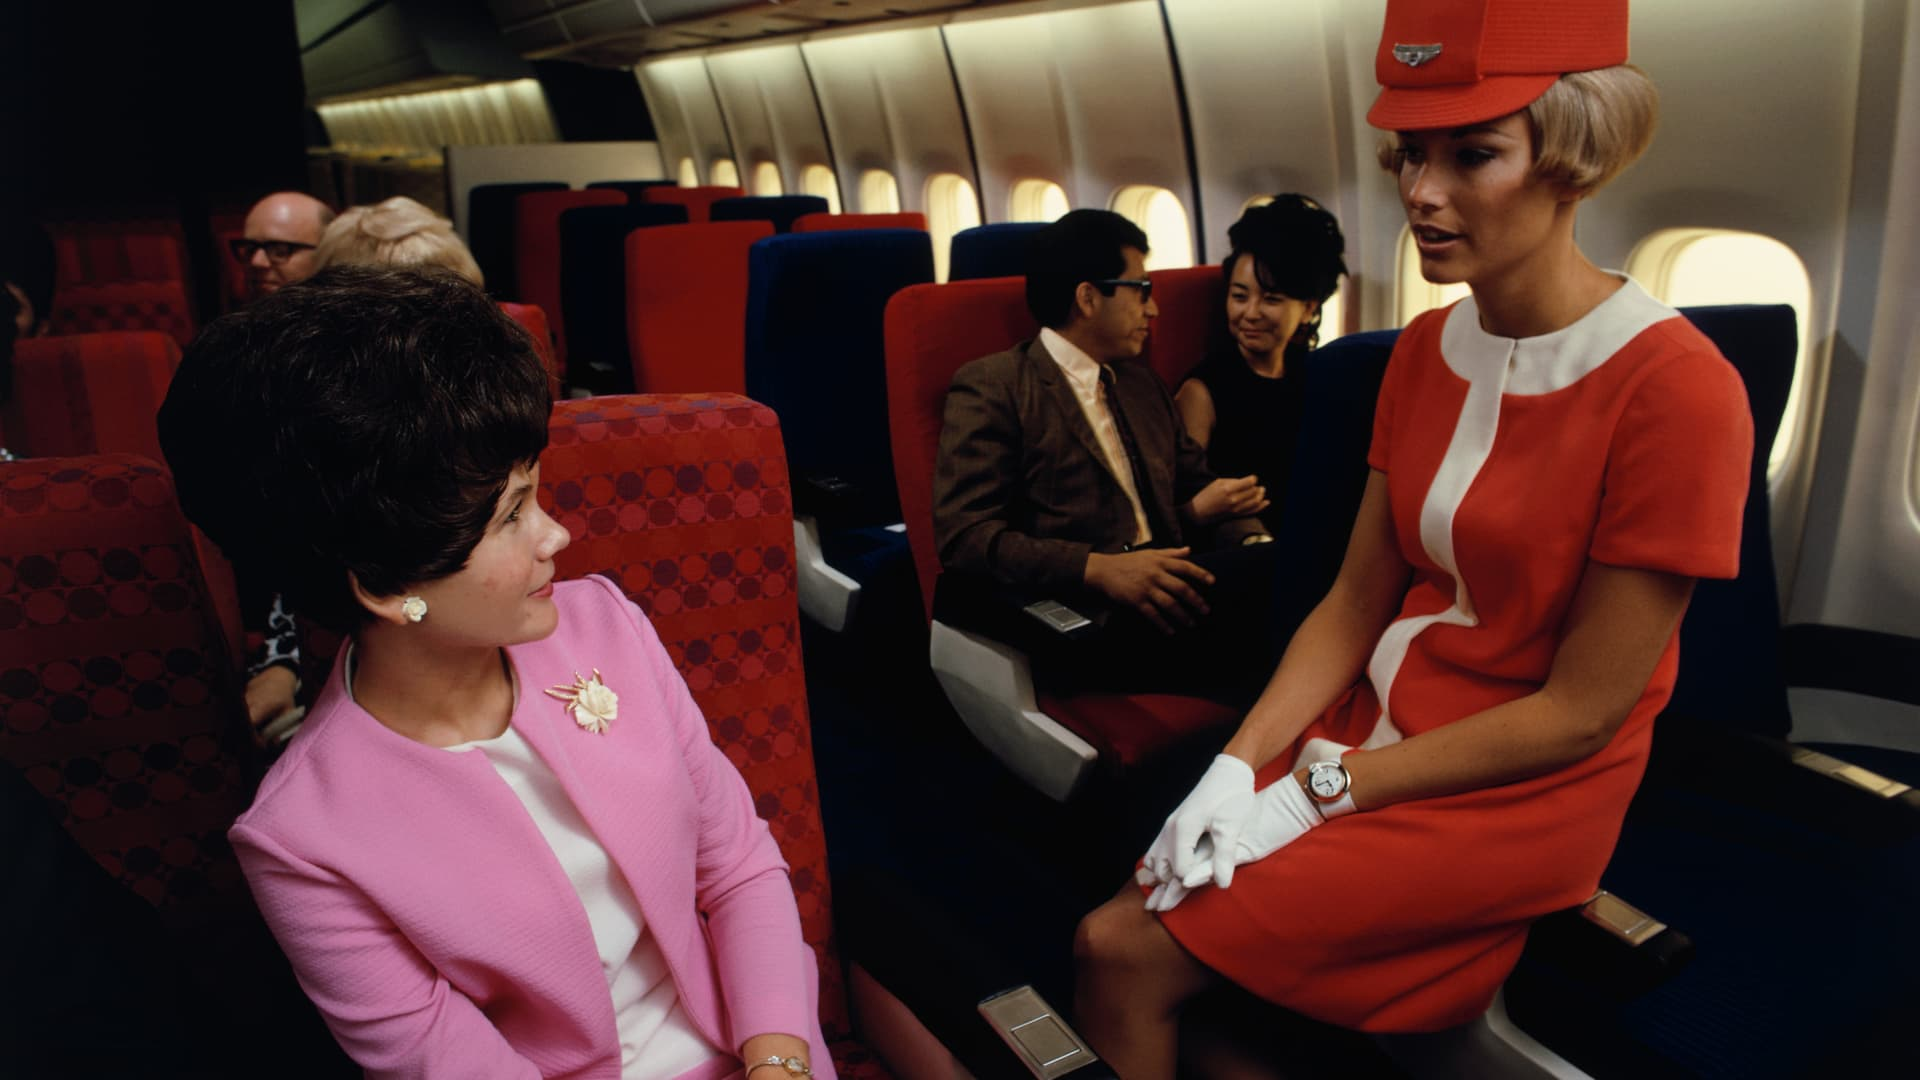 A United Airlines flight attendant talks with a passenger in a simulated passenger compartment of a Douglas DC-10.